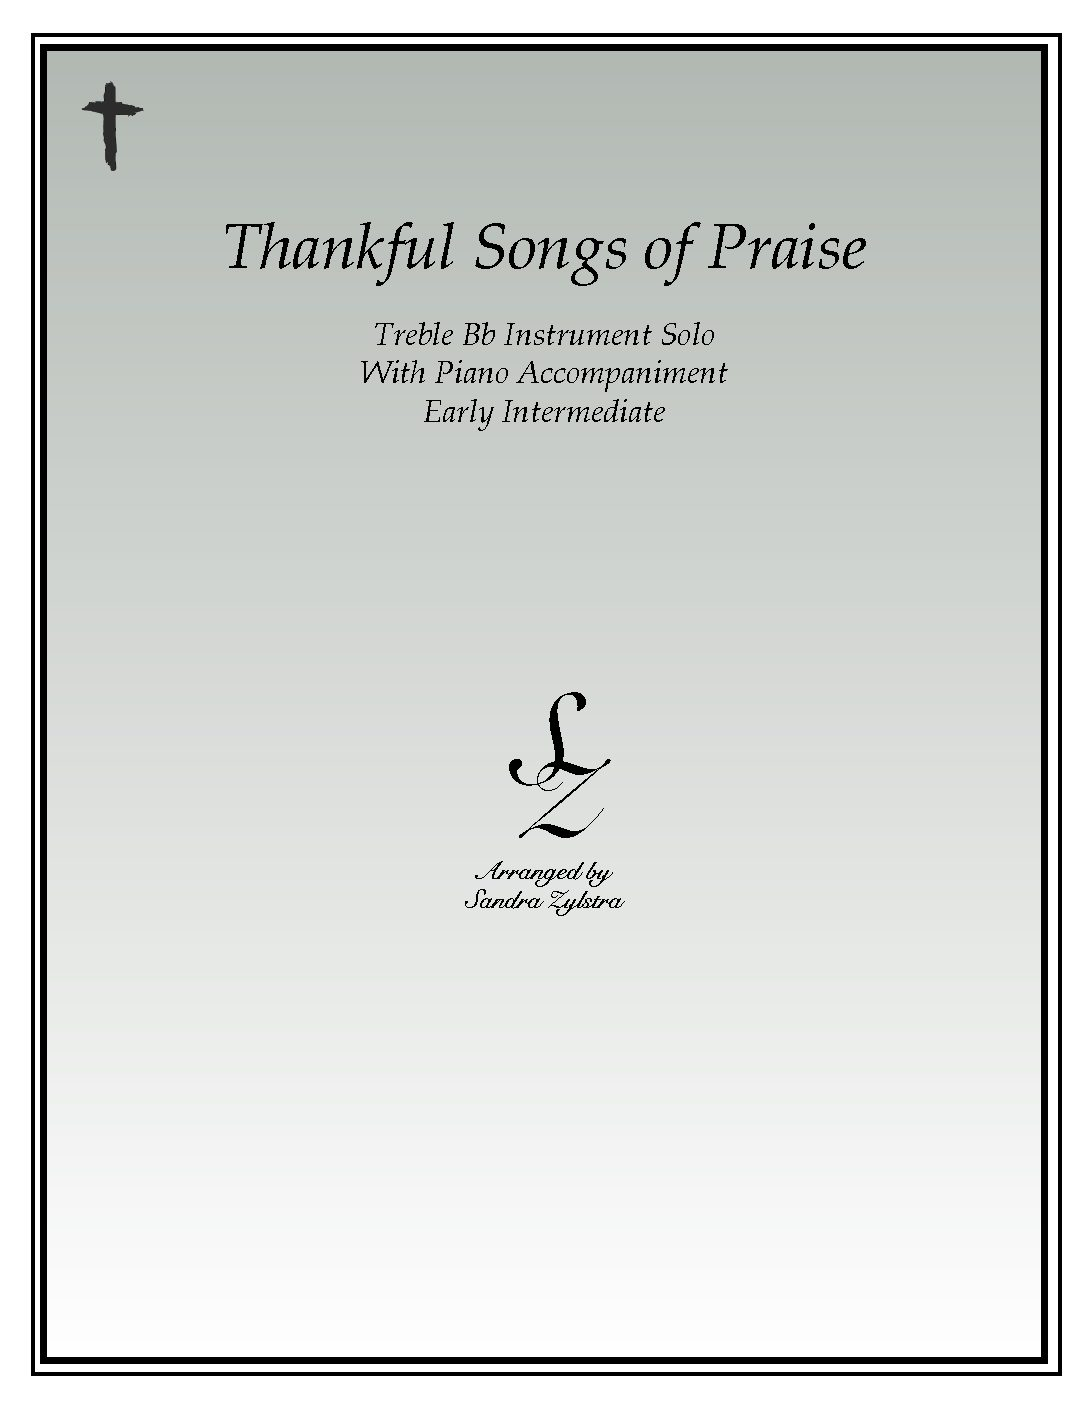 Thankful Songs Of Praise -Treble Bb Instrument Solo